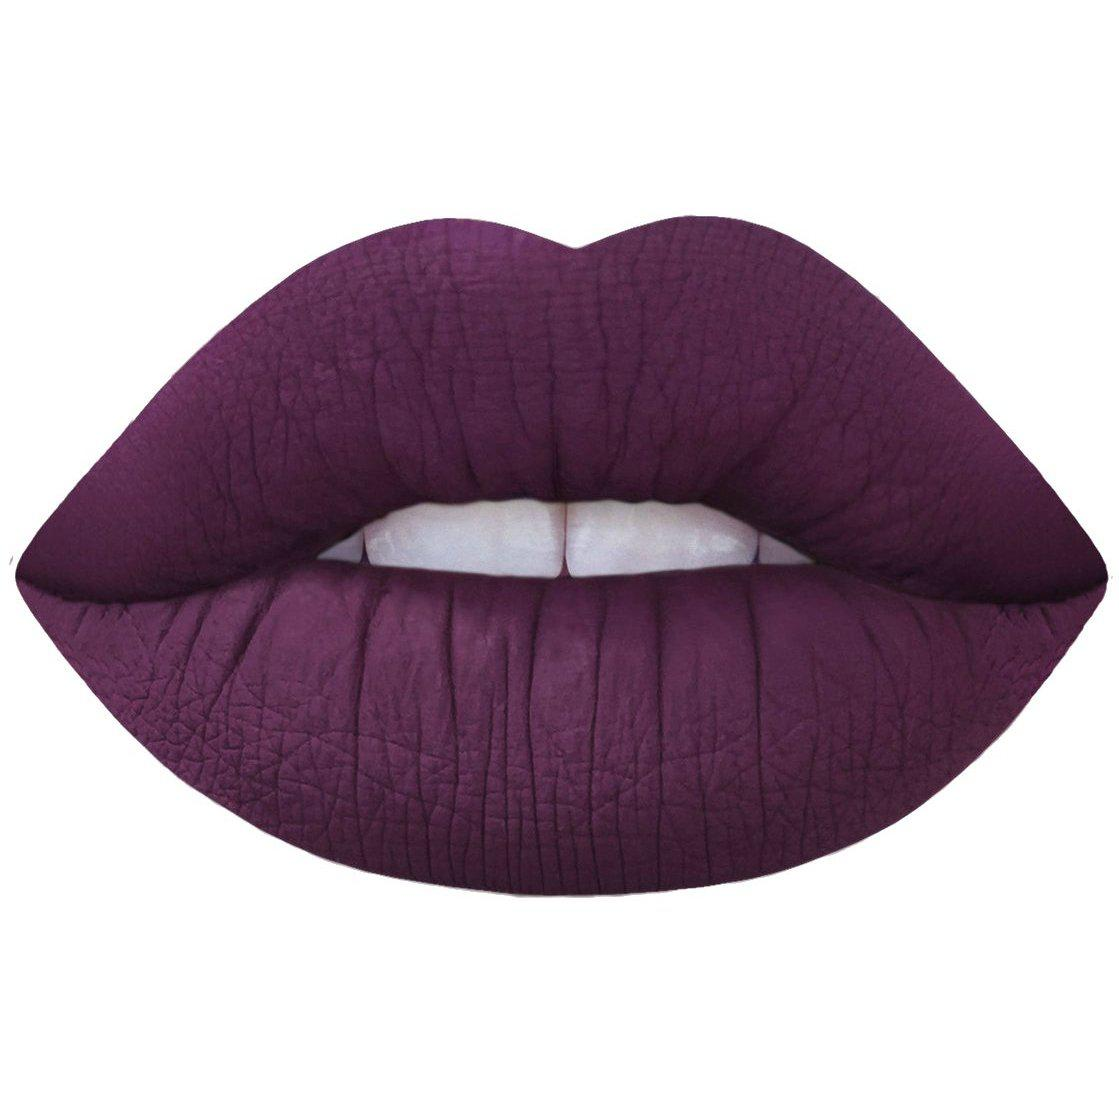 --Jinx - Velvetine Liquid Matte Lipstick Lime Crime - Let it Be Beauty - Your Online Beauty Store--